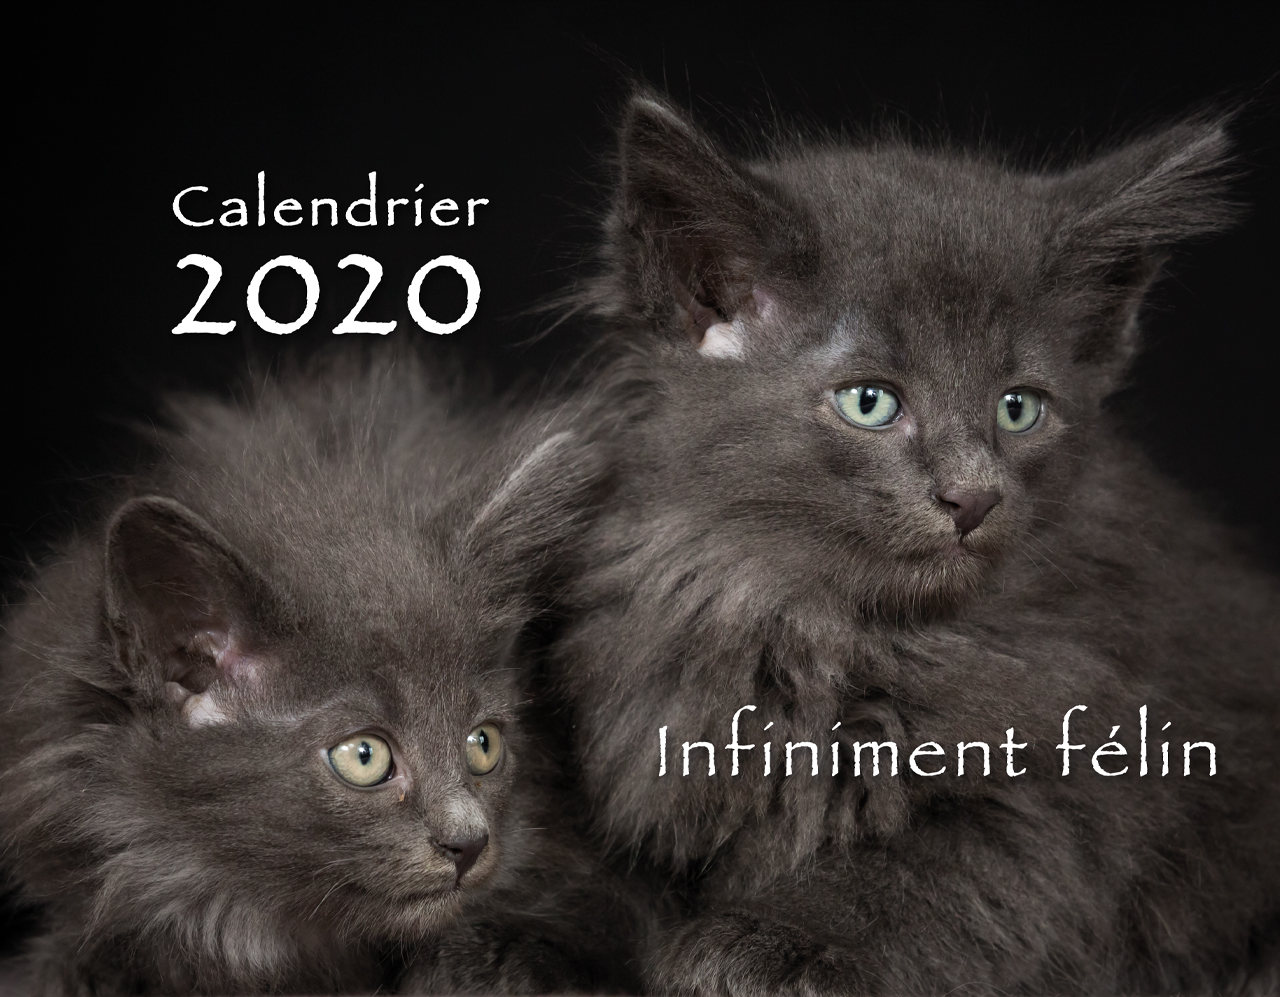 Calendrier Chat 2020.Calendrier 2020 Chats Photo Alain Thimmesch